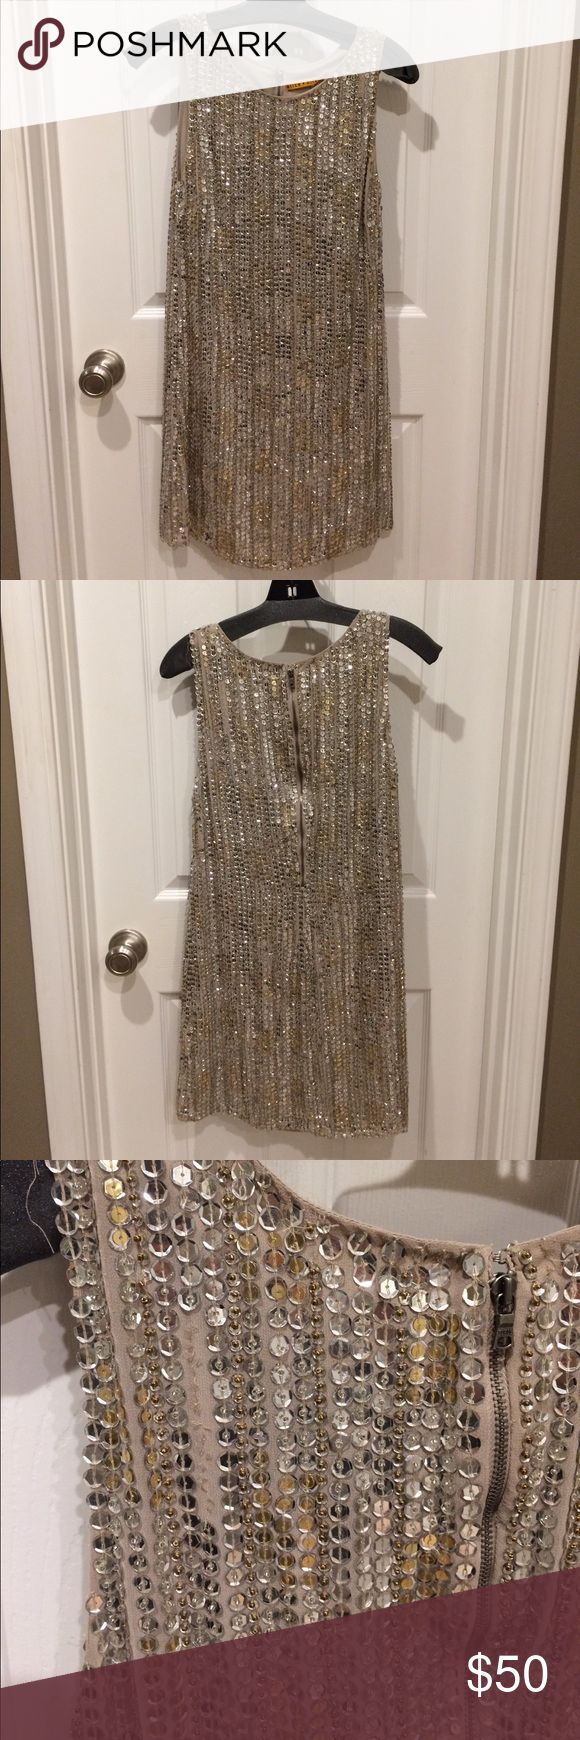 Alice + Olivia sequin cocktail dress, size 4. Alice + Olivia sequin cocktail dress, size 4.  Nude background with silver sequins & gold beads. Beautiful dress!  There are a couple of spots with sequins missing (see pics), this is reflected in the price & not noticeable when the dress is on. Alice & Olivia Dresses